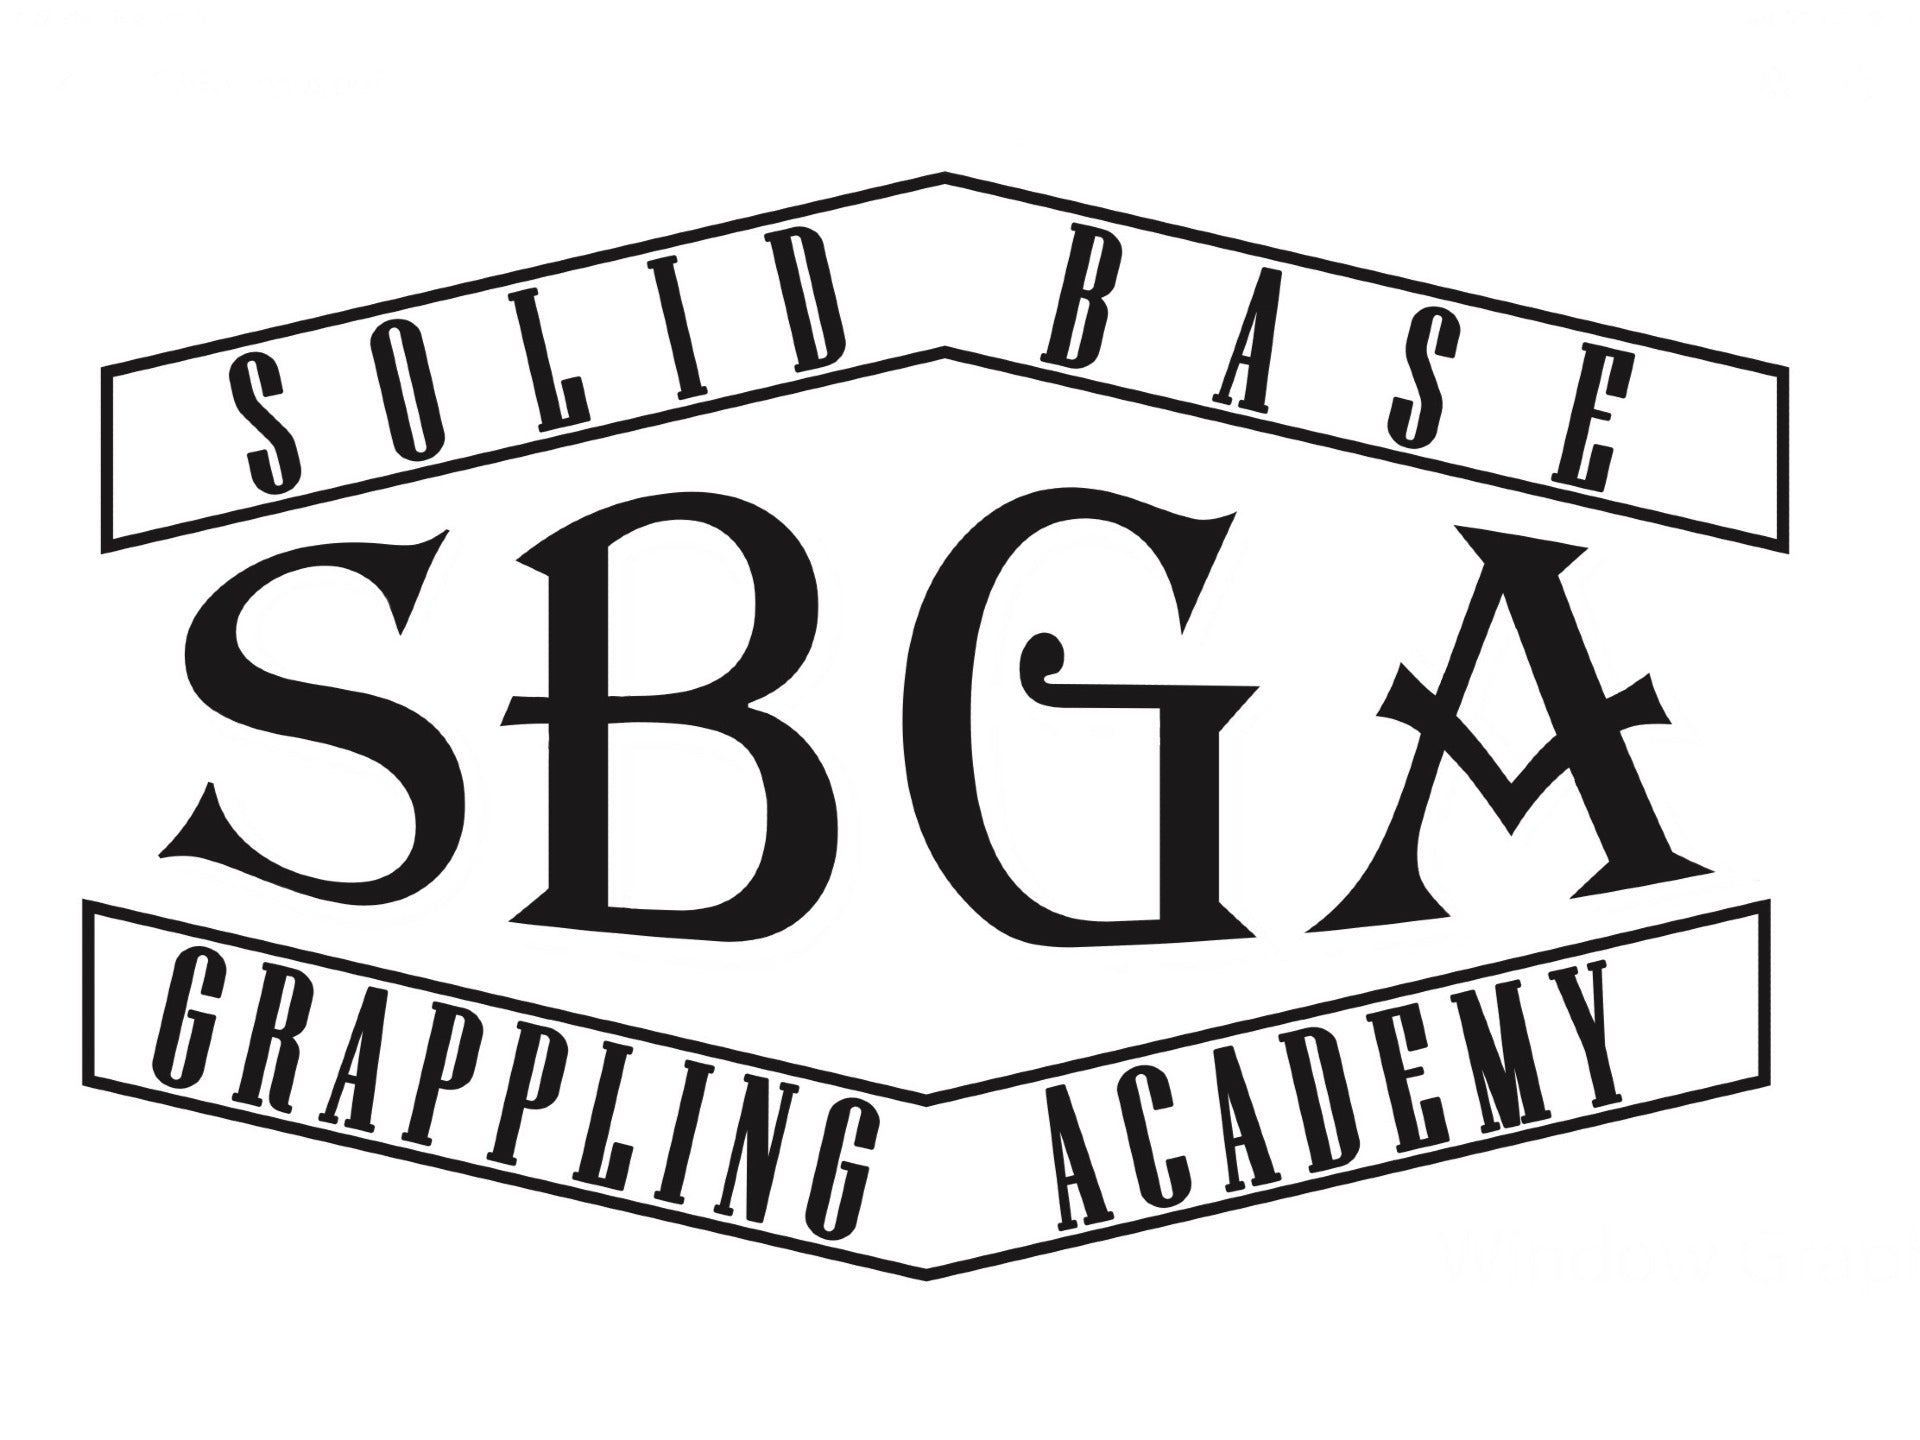 Solid Base Grappling Academy